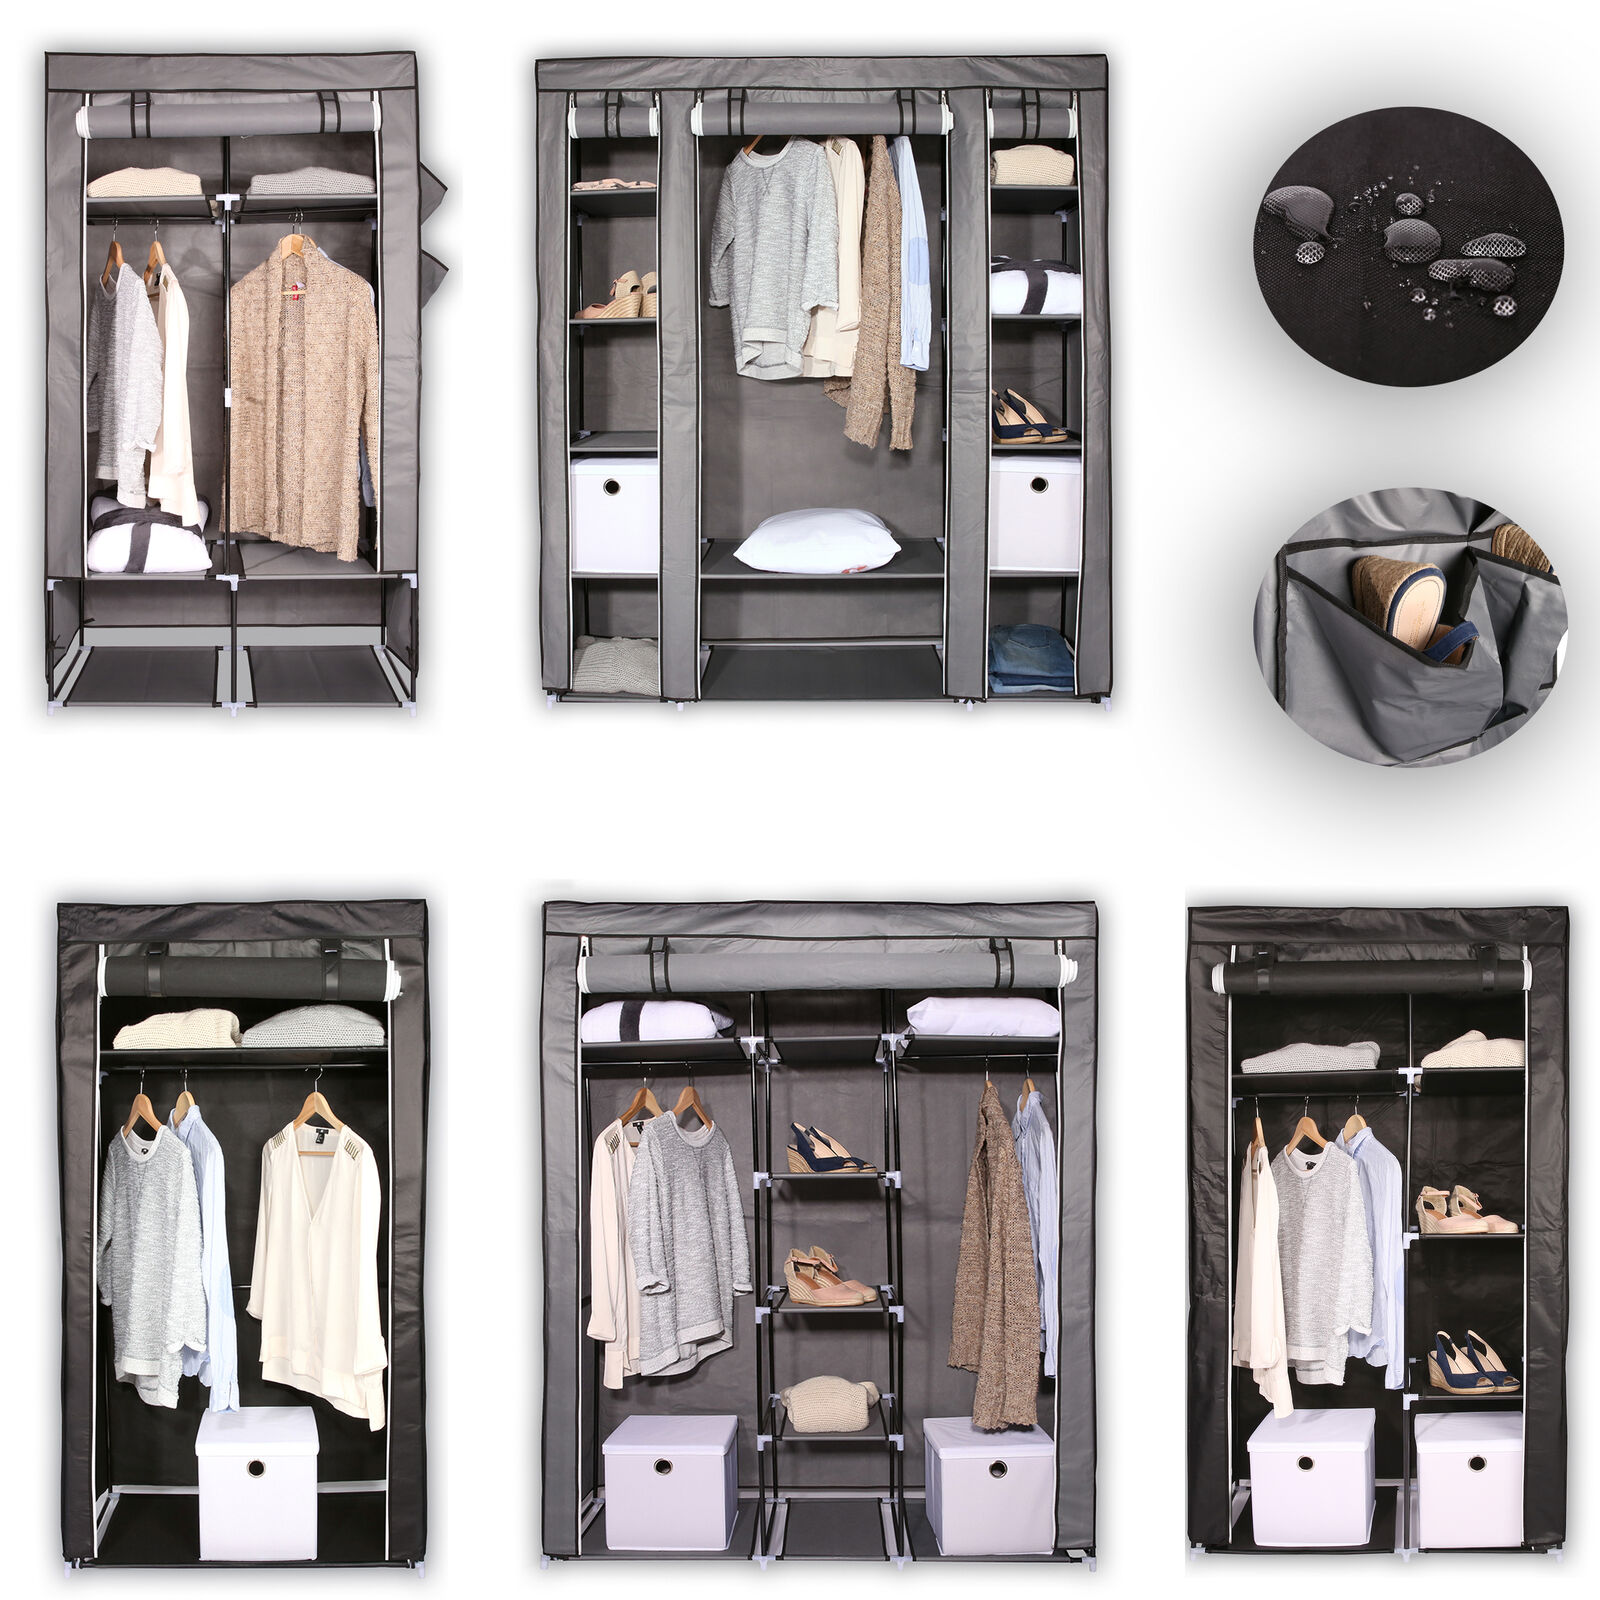 faltschrank kleiderschrank garderobenschrank campingschrank stoffschrank textil eur 15 99. Black Bedroom Furniture Sets. Home Design Ideas